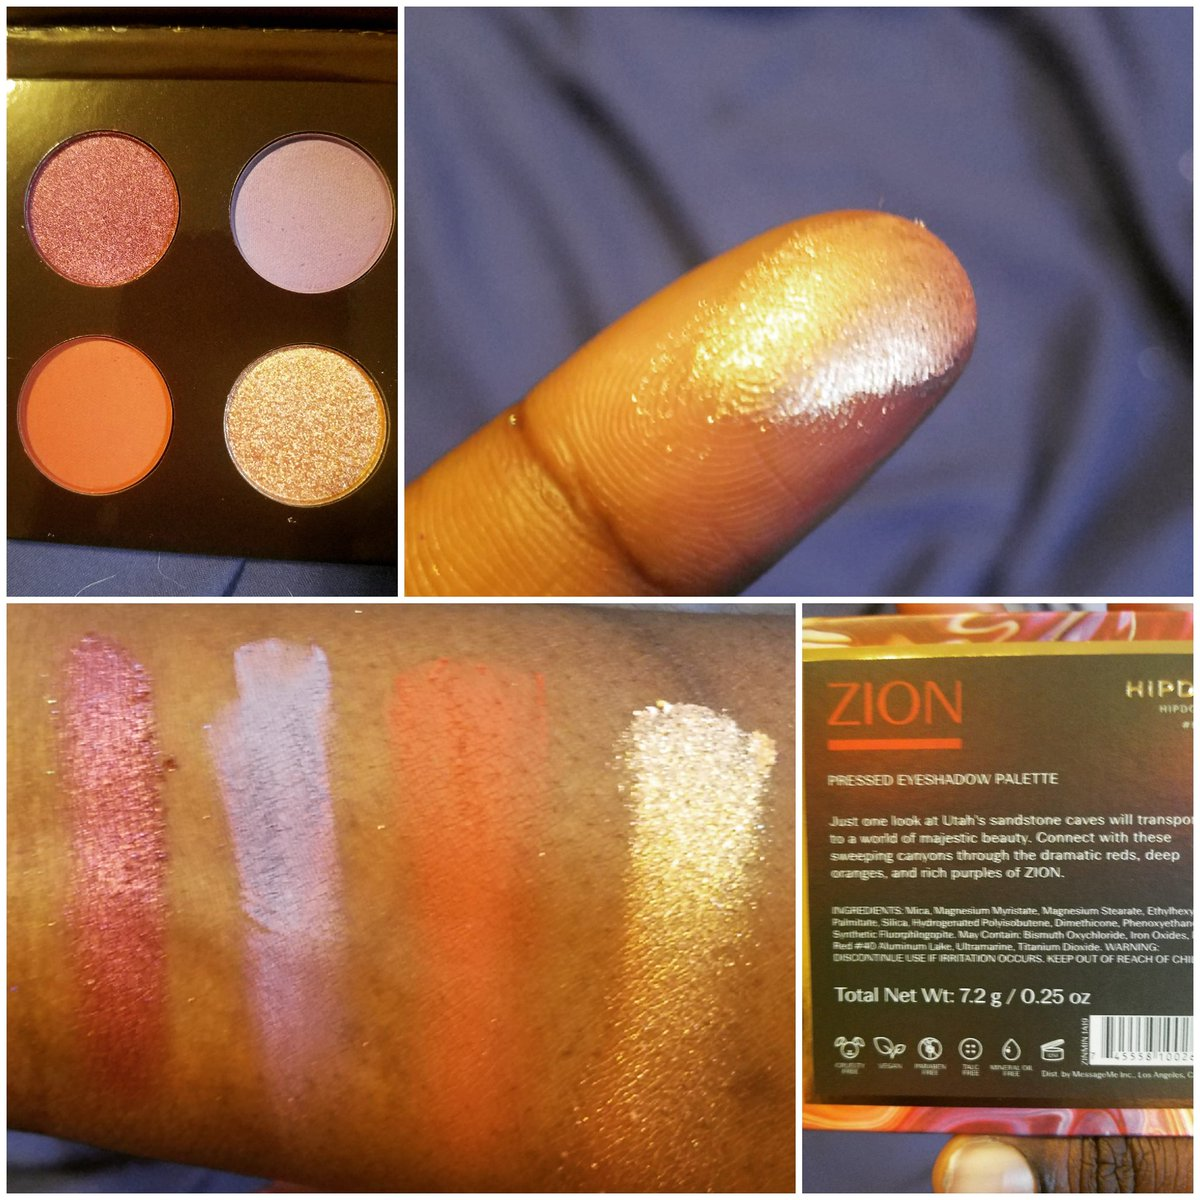 @HipDotCosmetics Zion Mini Palette Swatches   #hipdot #makeupswatches #makeup